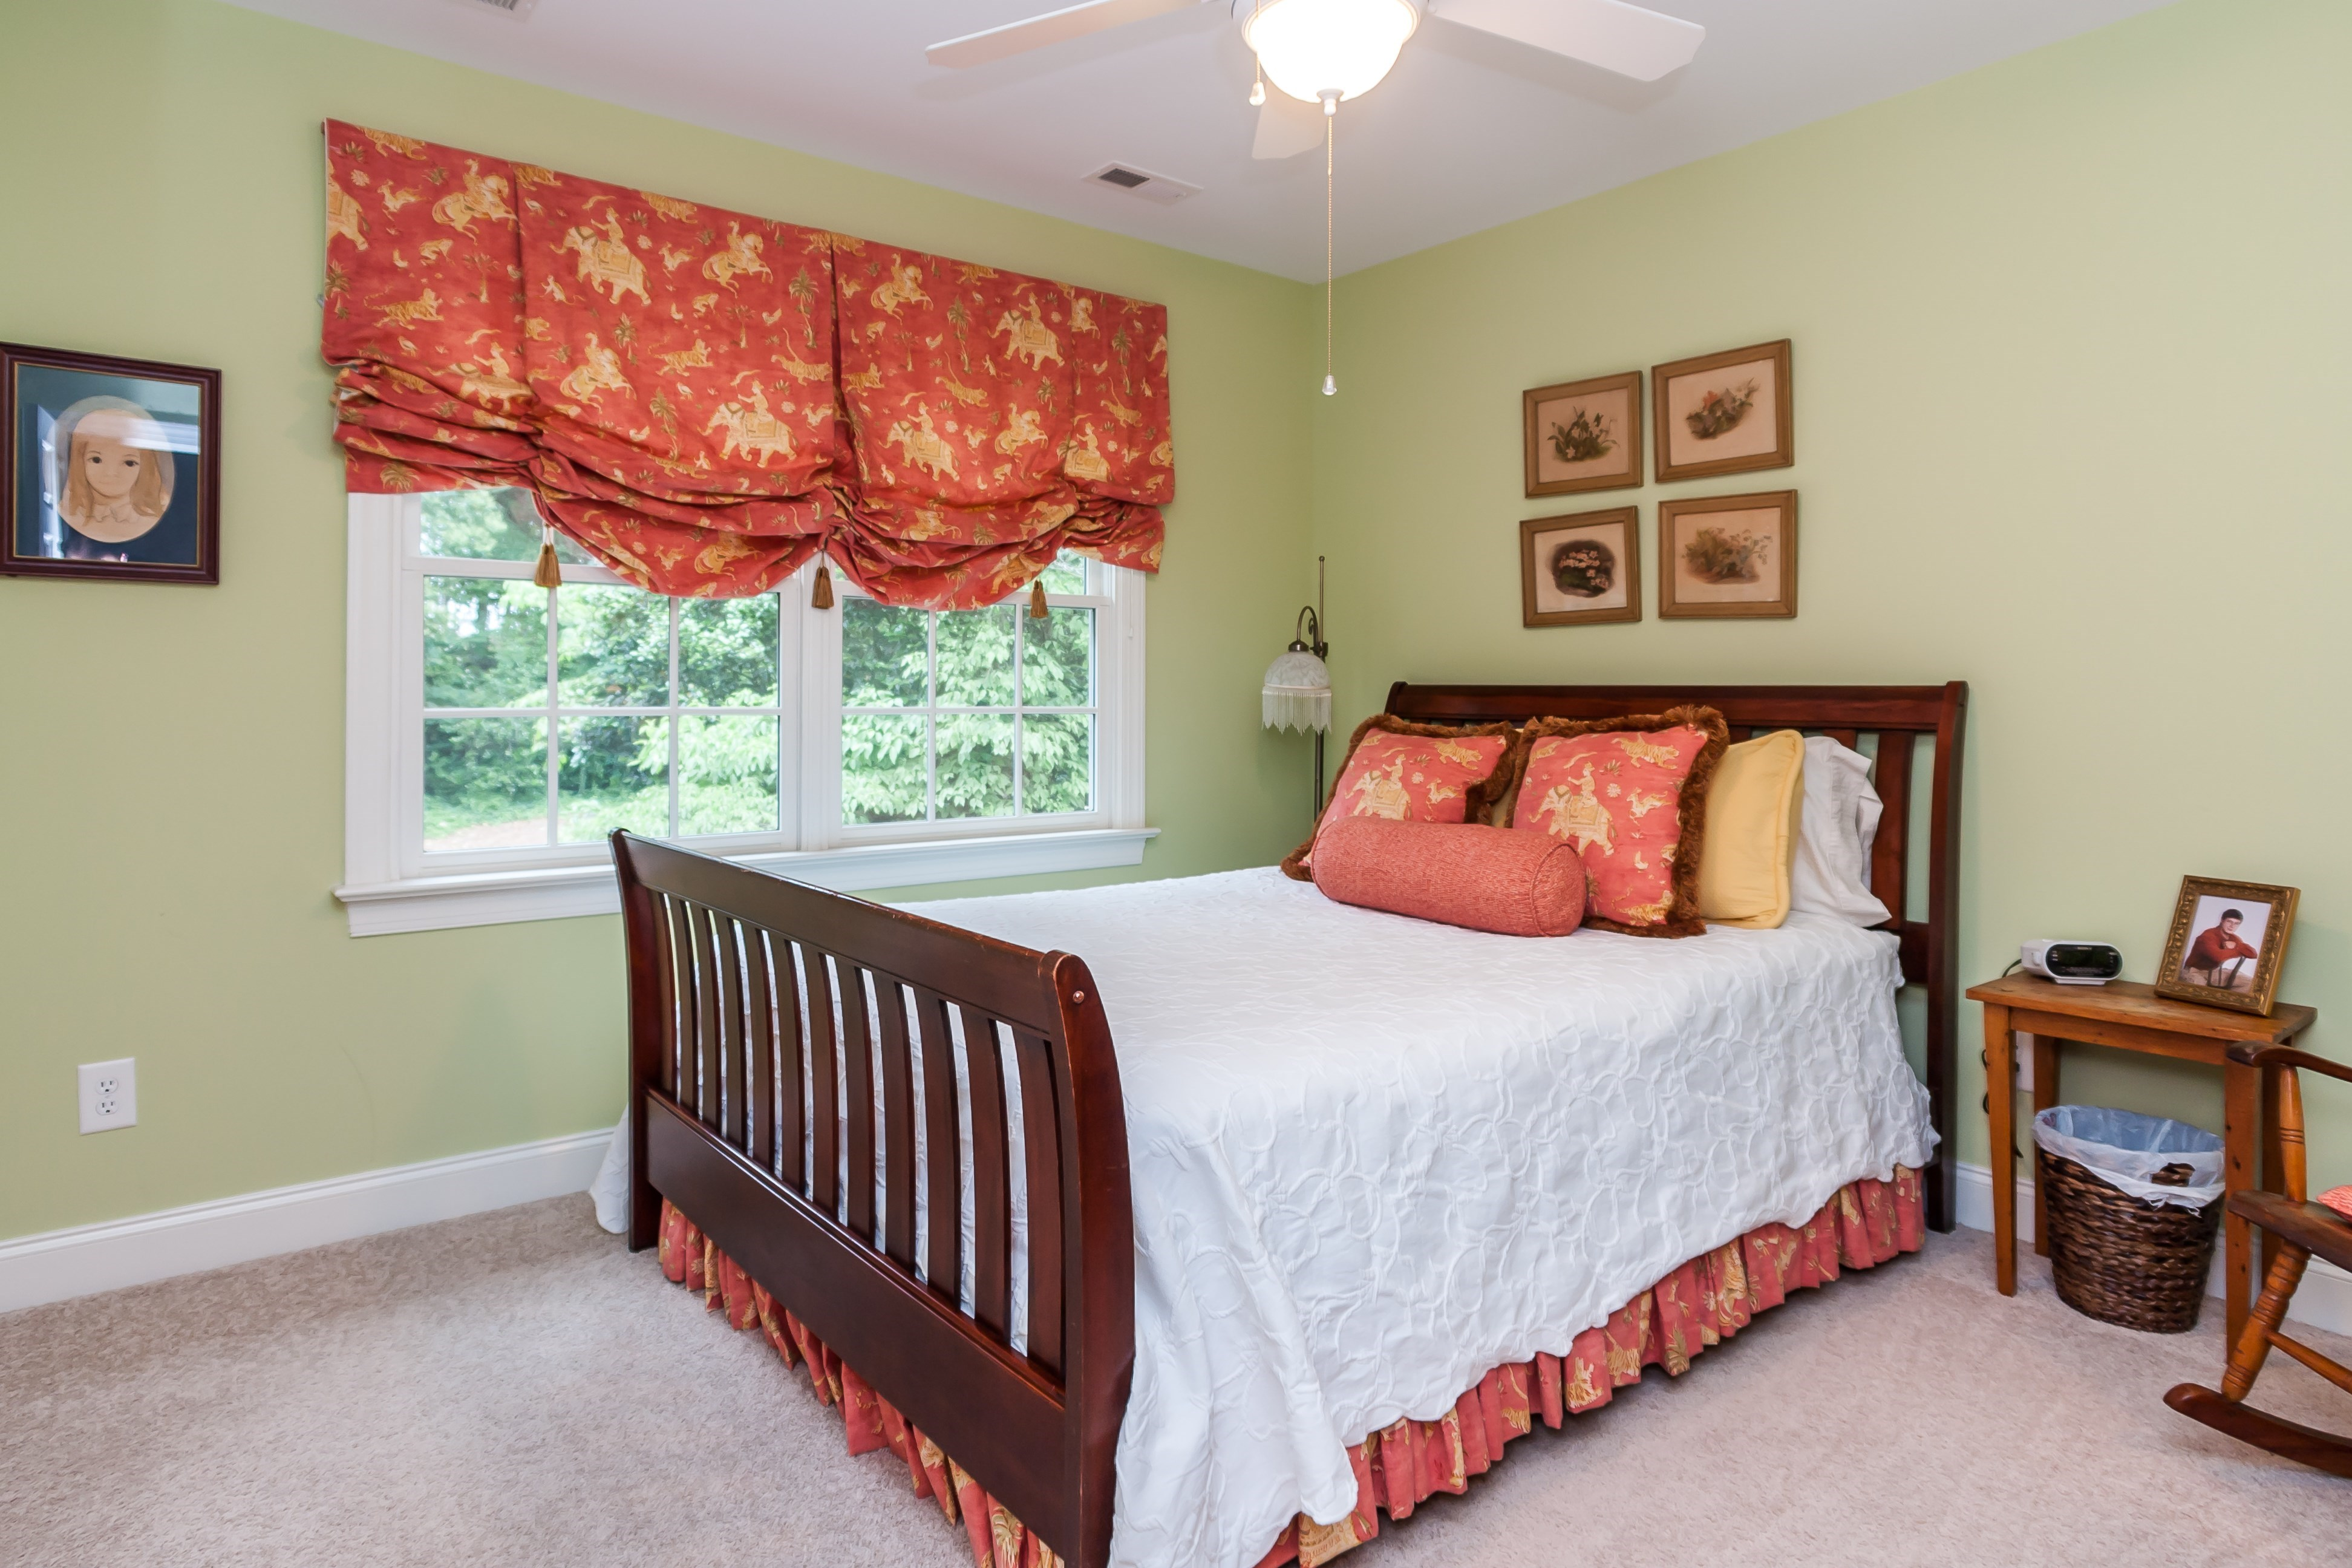 Additional photo for property listing at Drewry Hills Dream Home 3320 Milton Road 罗利, 北卡罗来纳州 27609 美国